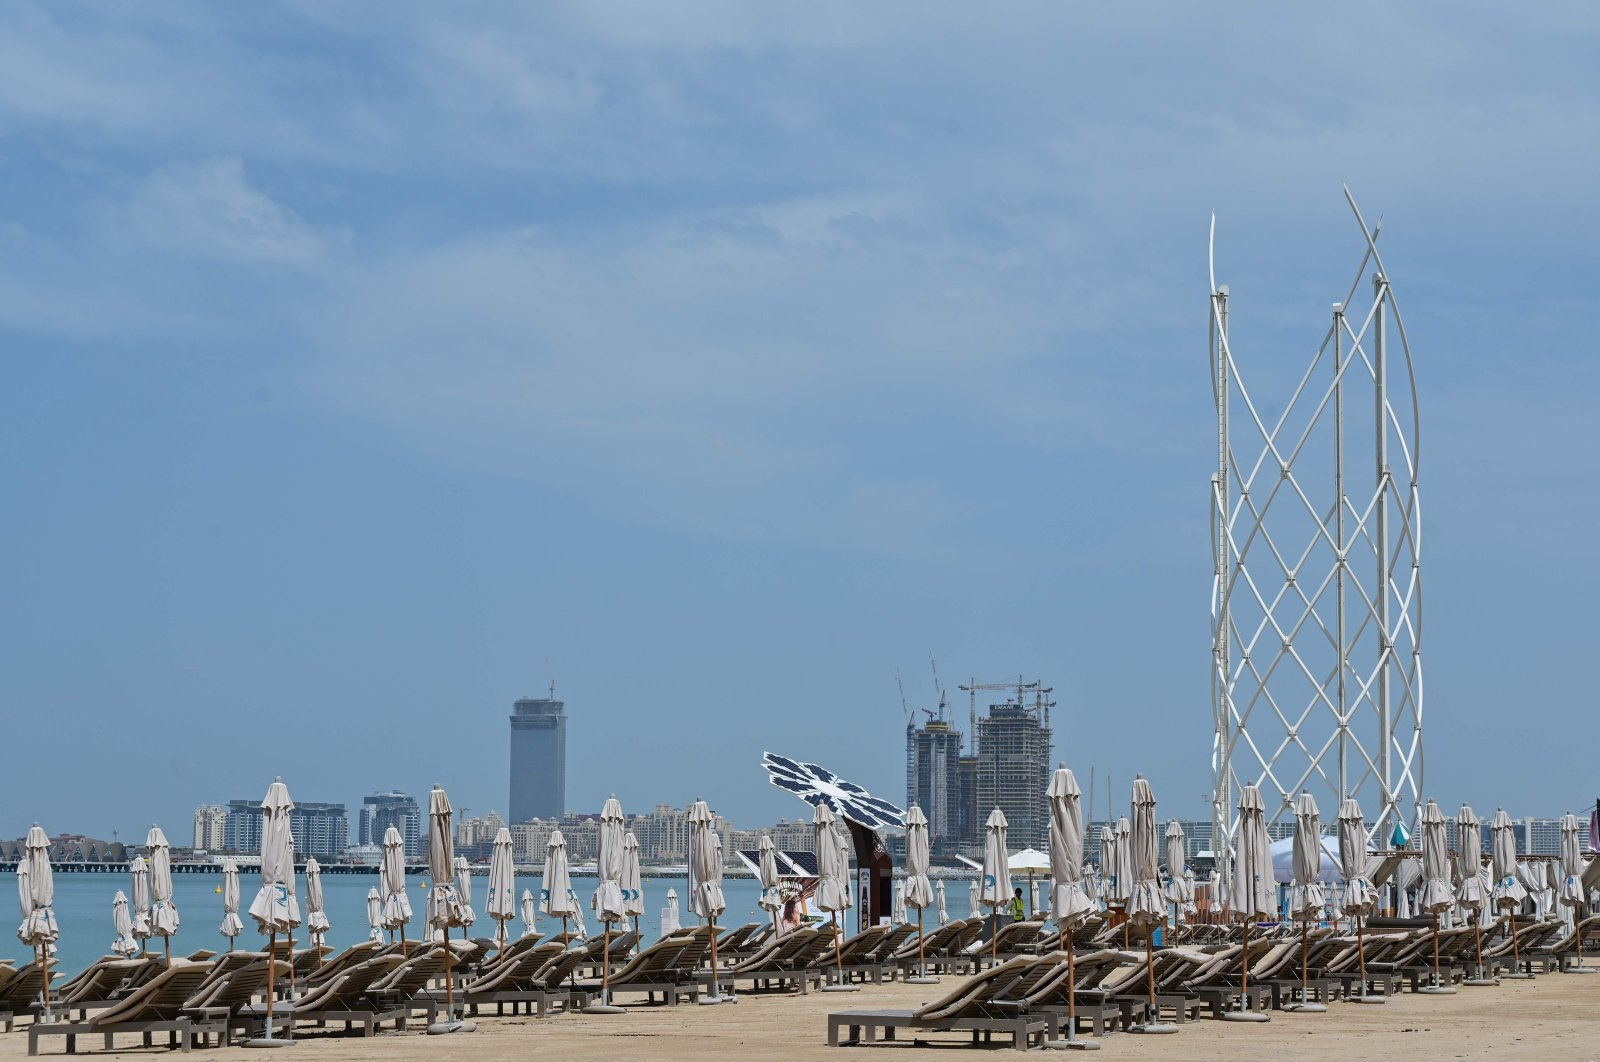 Beach chairs sit empty at Jumeirah Beach Residence in Dubai on March 22, 2020, following the closure of all beaches by authorities amid the COVID-19 pandemic. (AFP Photo)